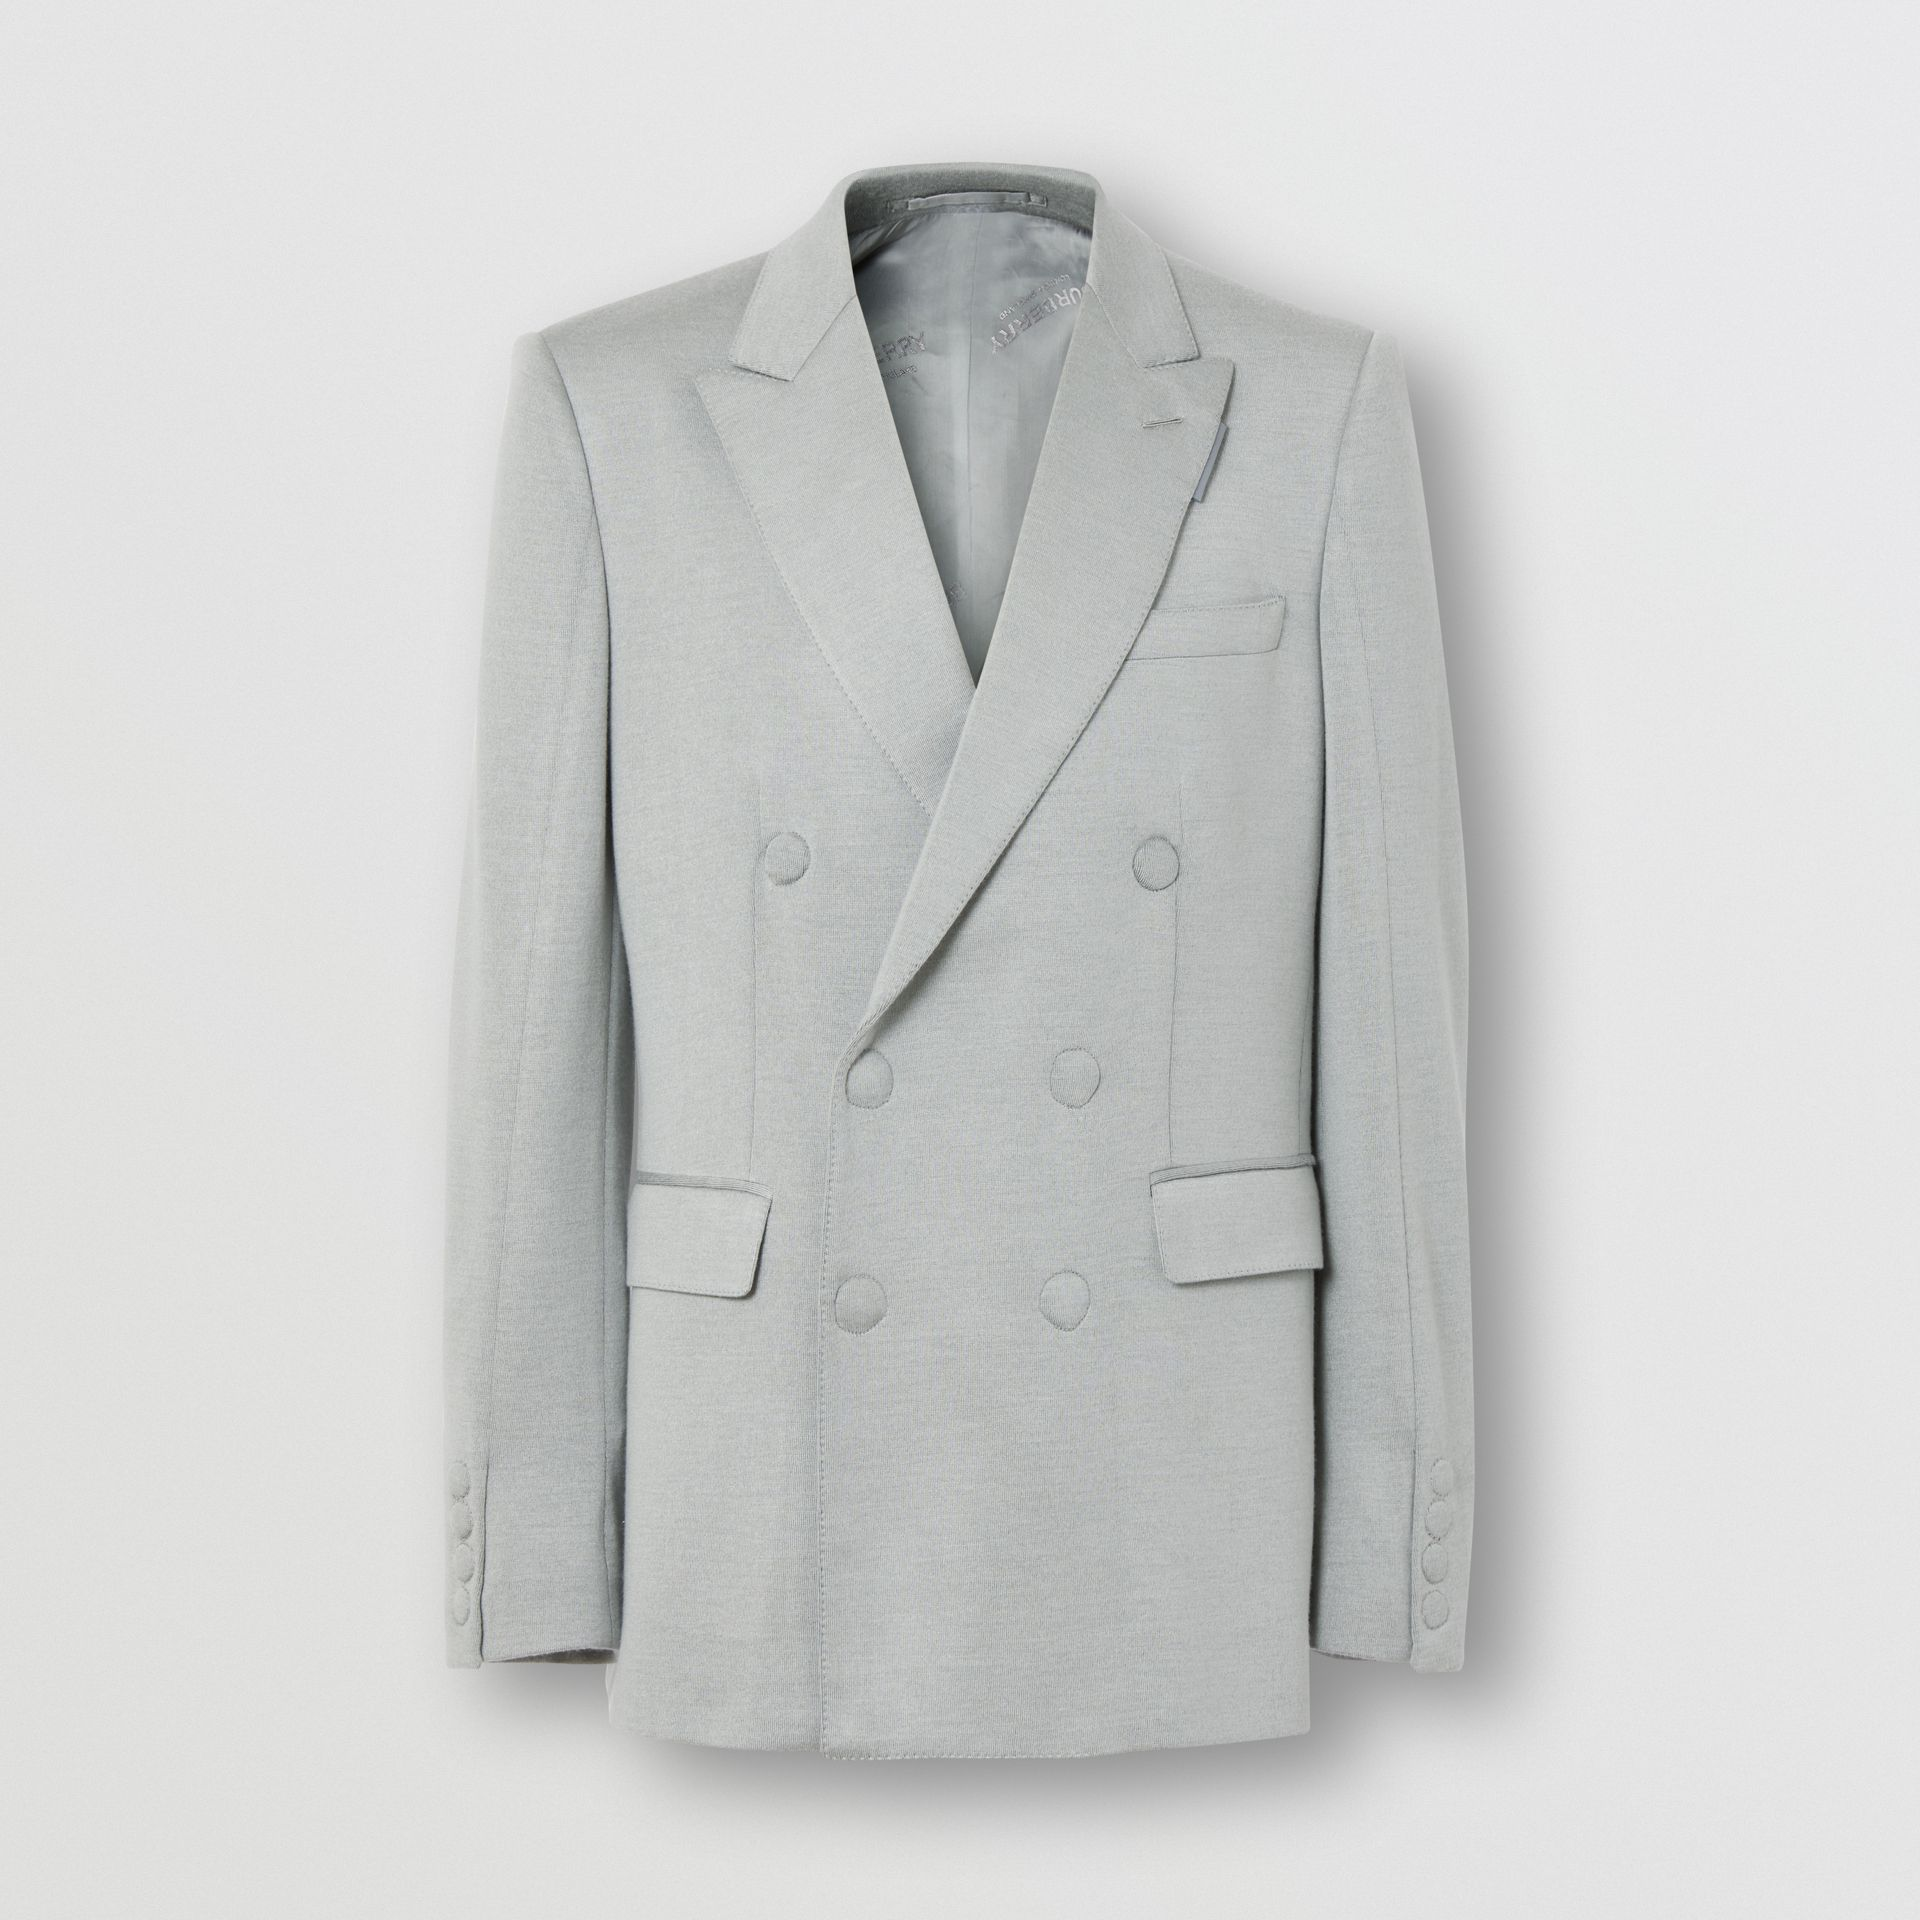 English Fit Cashmere Silk Jersey Double-breasted Jacket in Light Pebble Grey | Burberry United States - gallery image 3